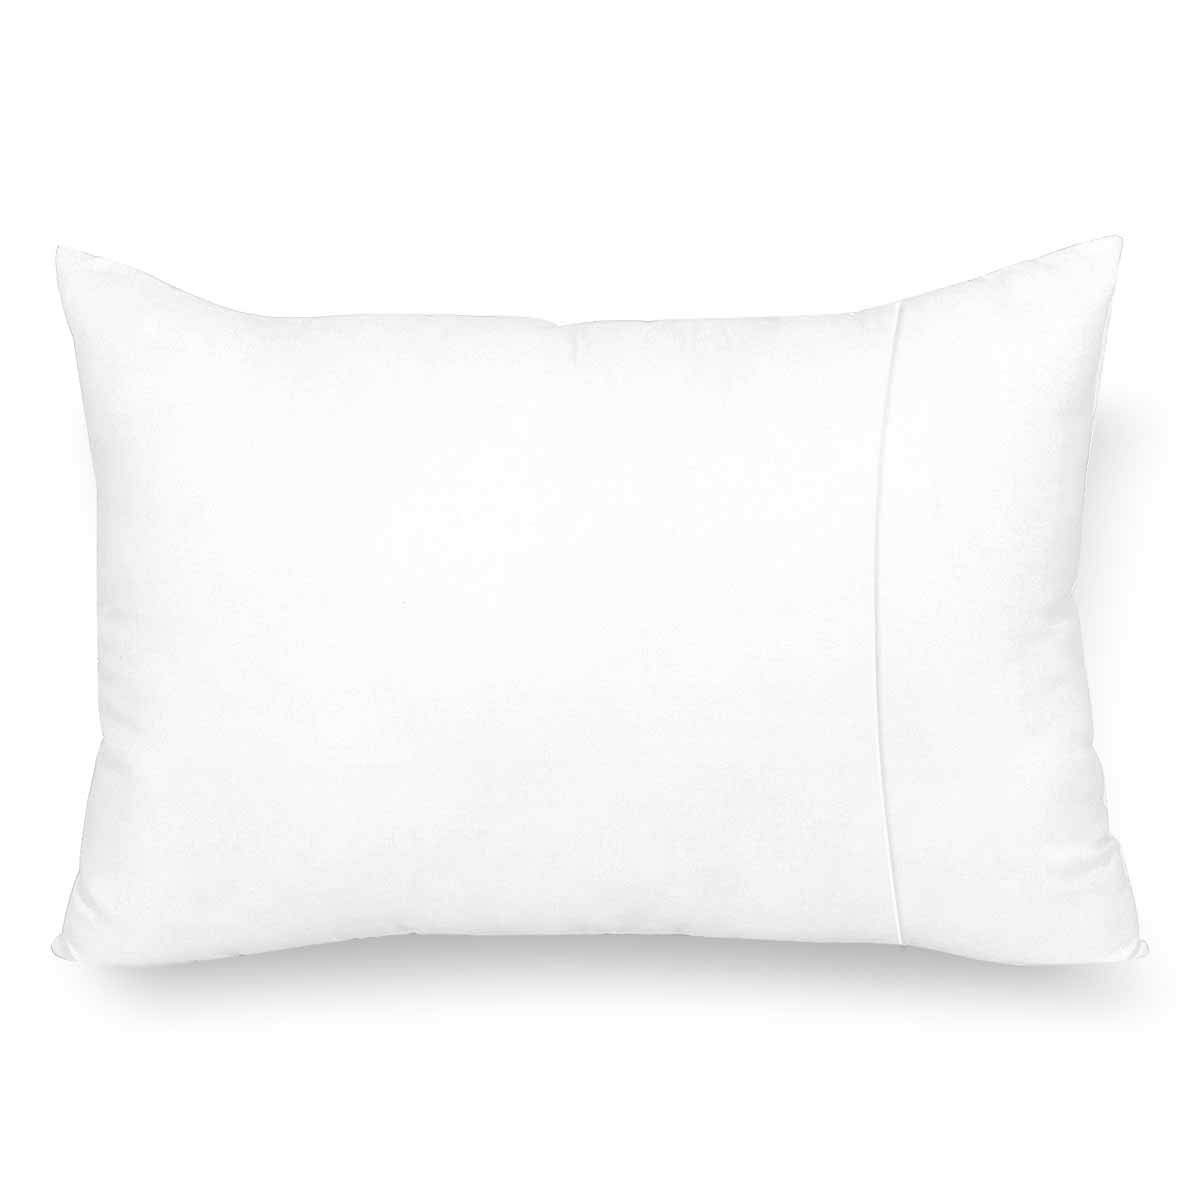 GCKG Inscription Number Pi Print Pattern Pillow Cases Pillowcase 20x30 inches - image 2 of 4